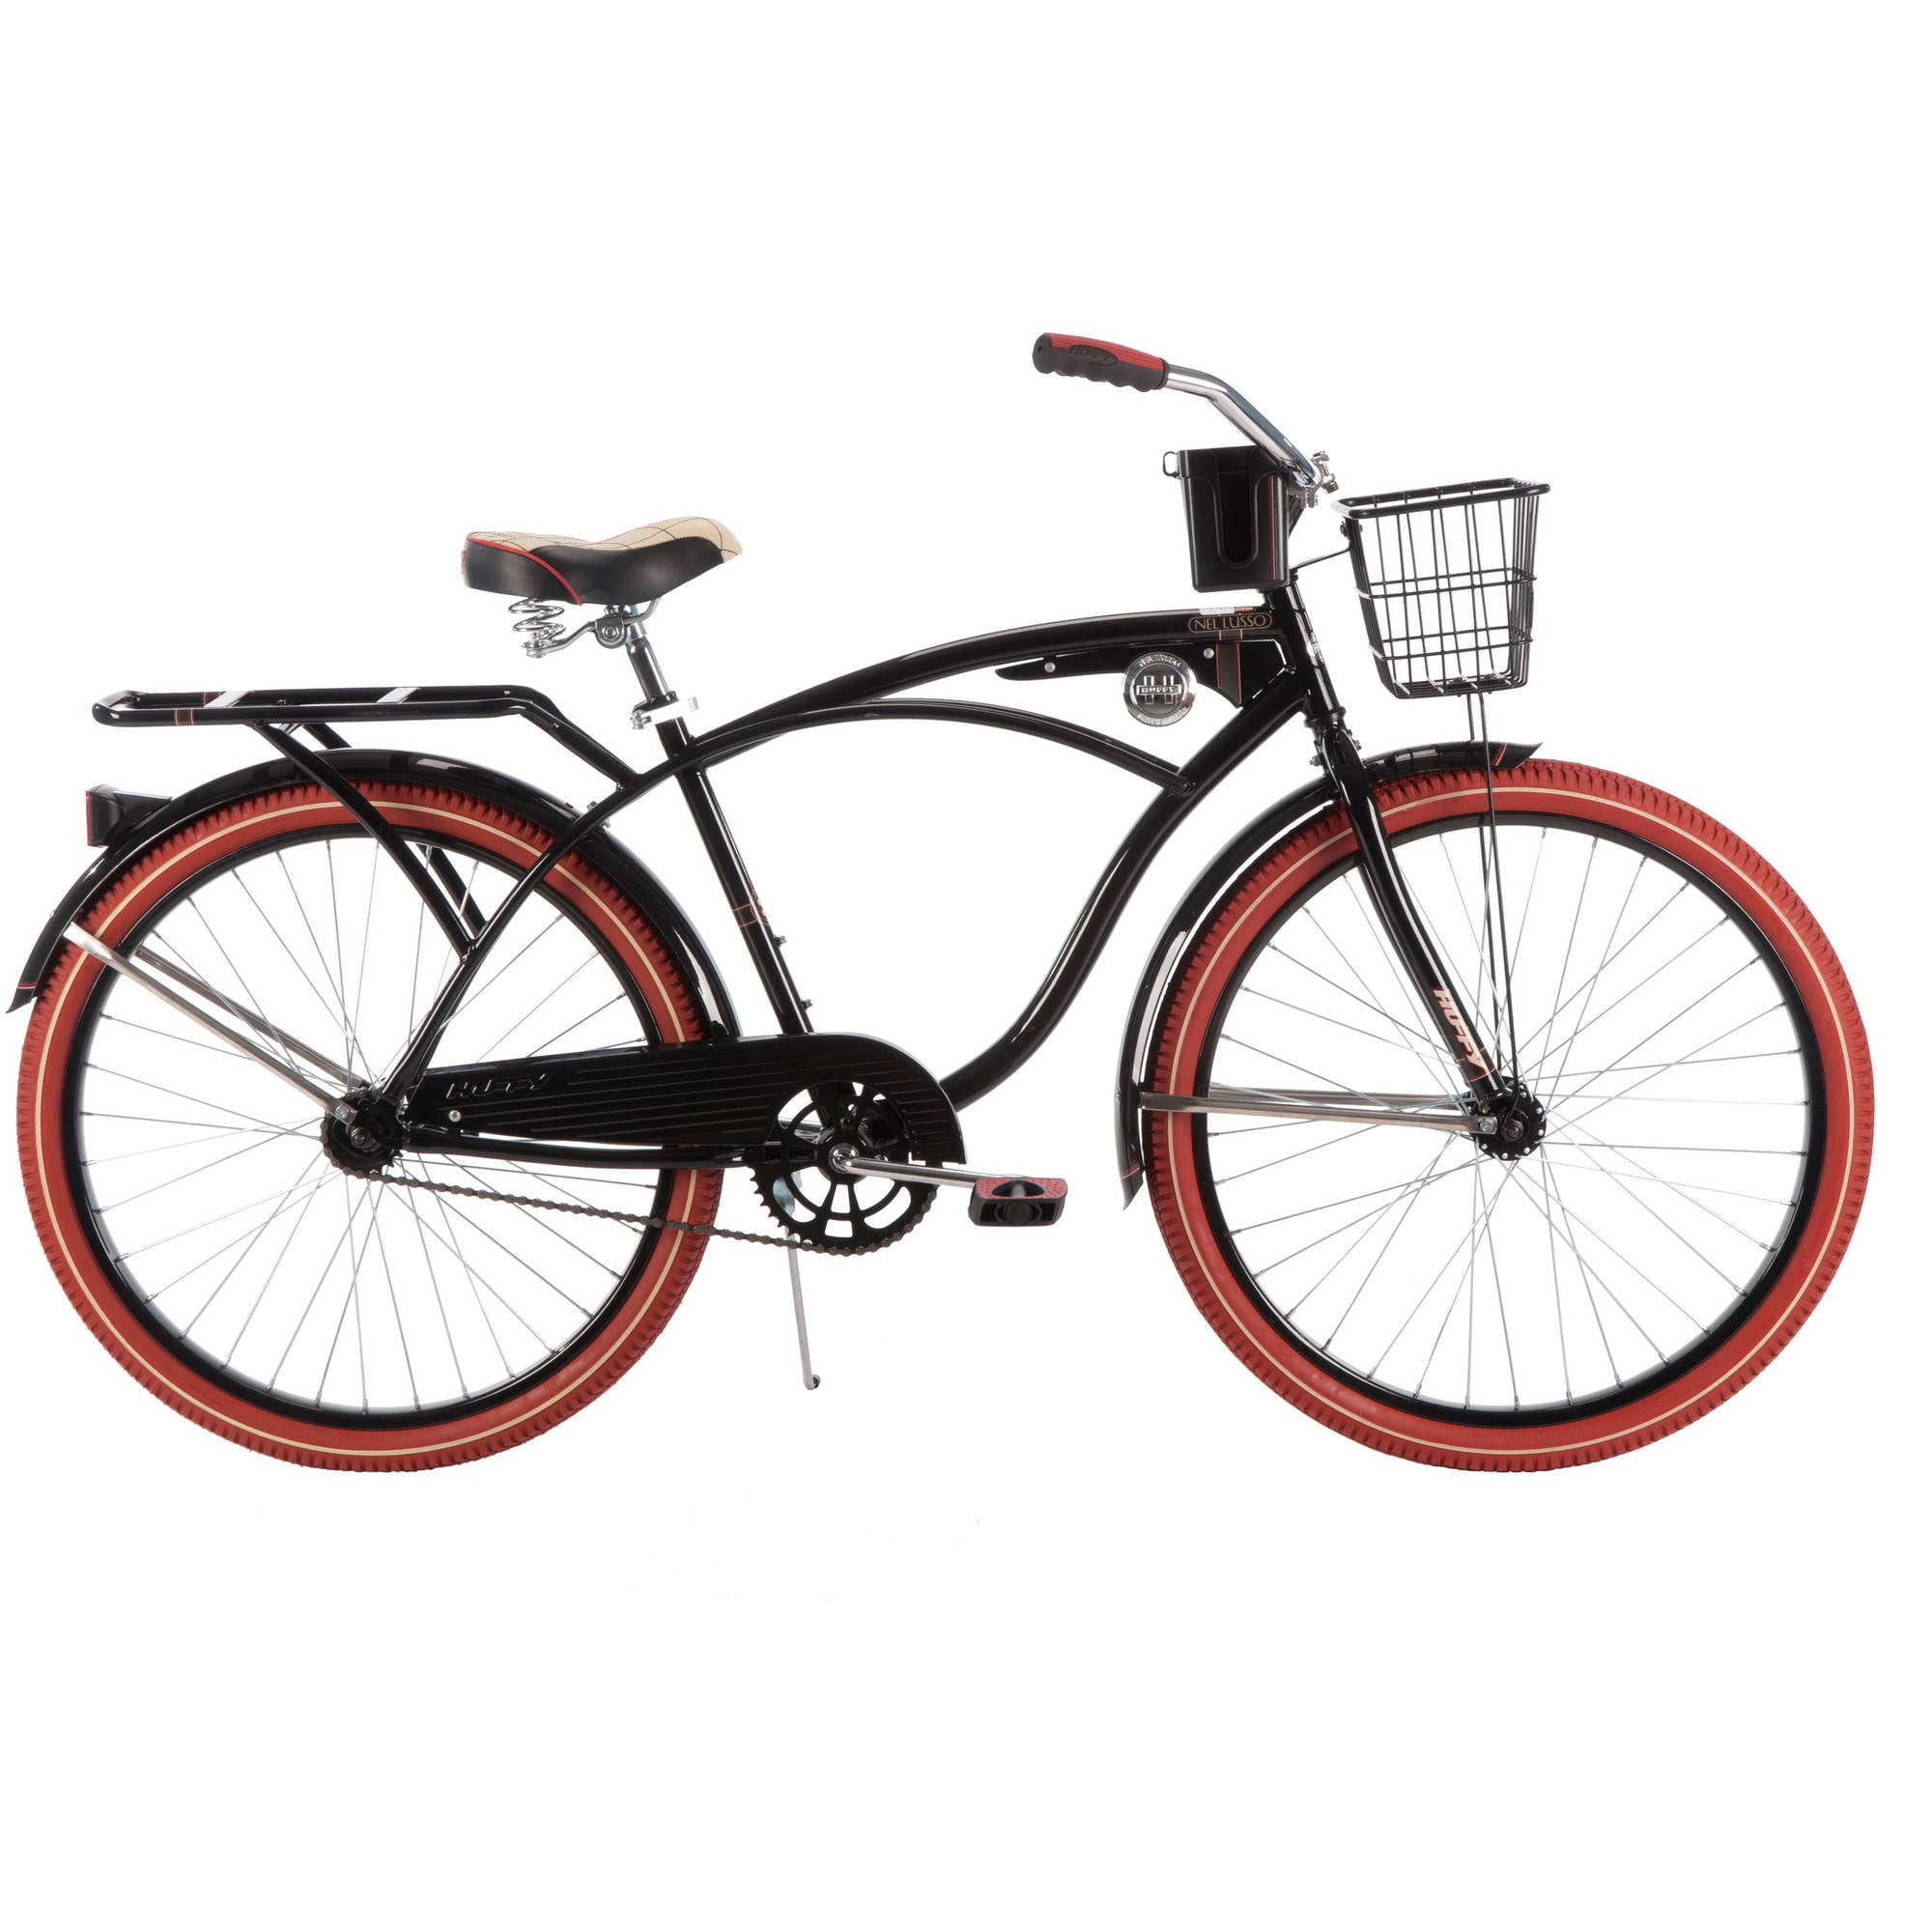 "Huffy 26"" Nel Lusso Men's Cruiser Bike, Black by Huffy"